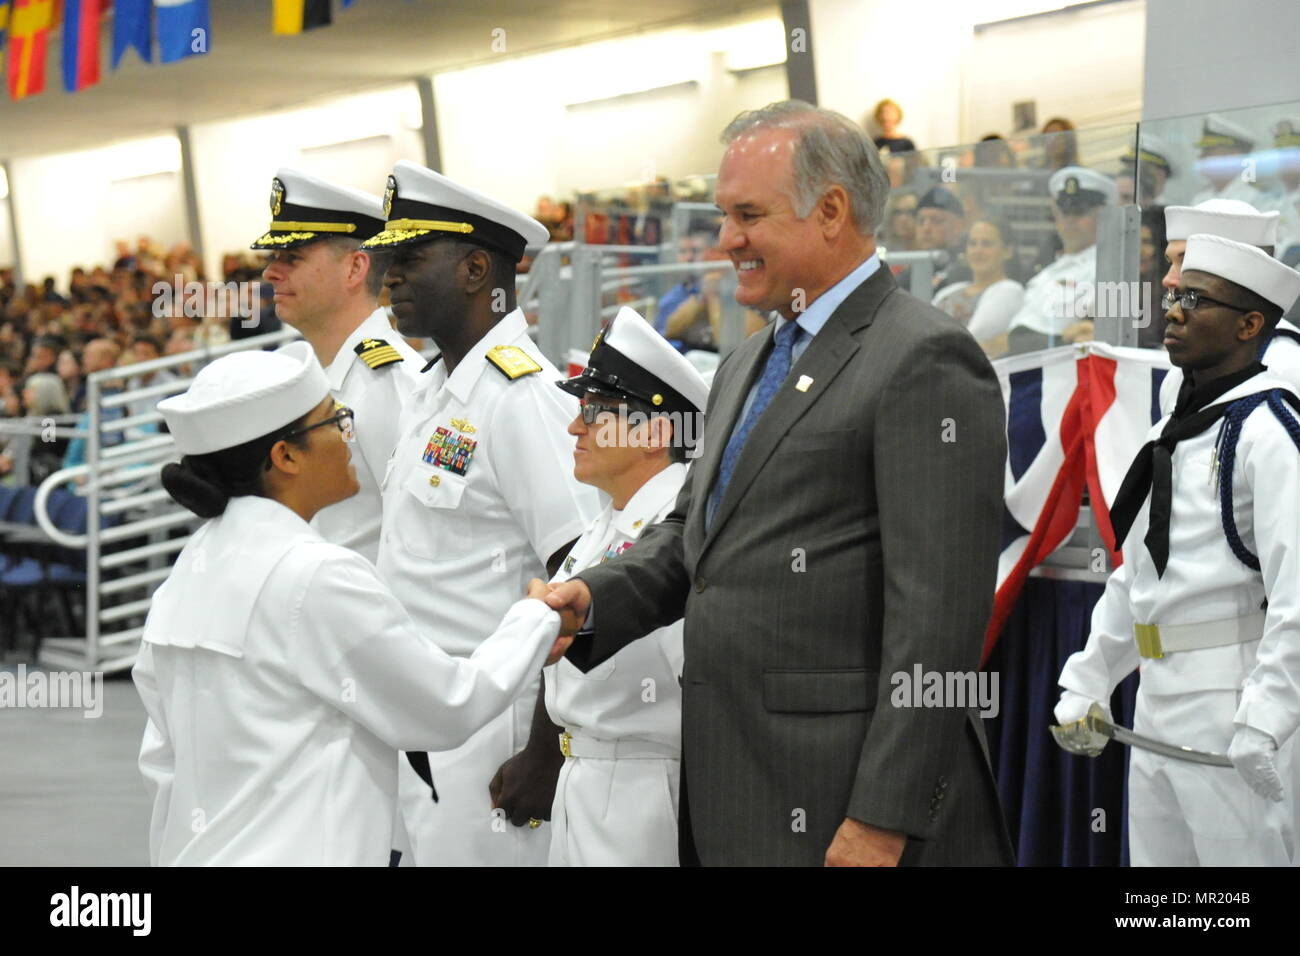 170428-N-CM124-303  GREAT LAKES, Il. (April. 28, 2017) Ryne Sandberg, a former Chicago Cubs and Philadelphia Phillies major league baseball (MLB) player and member of MLB Hall of Fame, was the guest of honor during a boot camp graduation ceremony at Recruit Training Command. Sandberg attended the graduation as a guest of Rear Adm. Stephen Evans, commander, Naval Service Training Command, pictured second from left. Approximately 30,000-40,000 recruits graduate annually from the Navy's only boot camp. (U.S. Navy photo by Susan Krawczyk/Released) - Stock Image